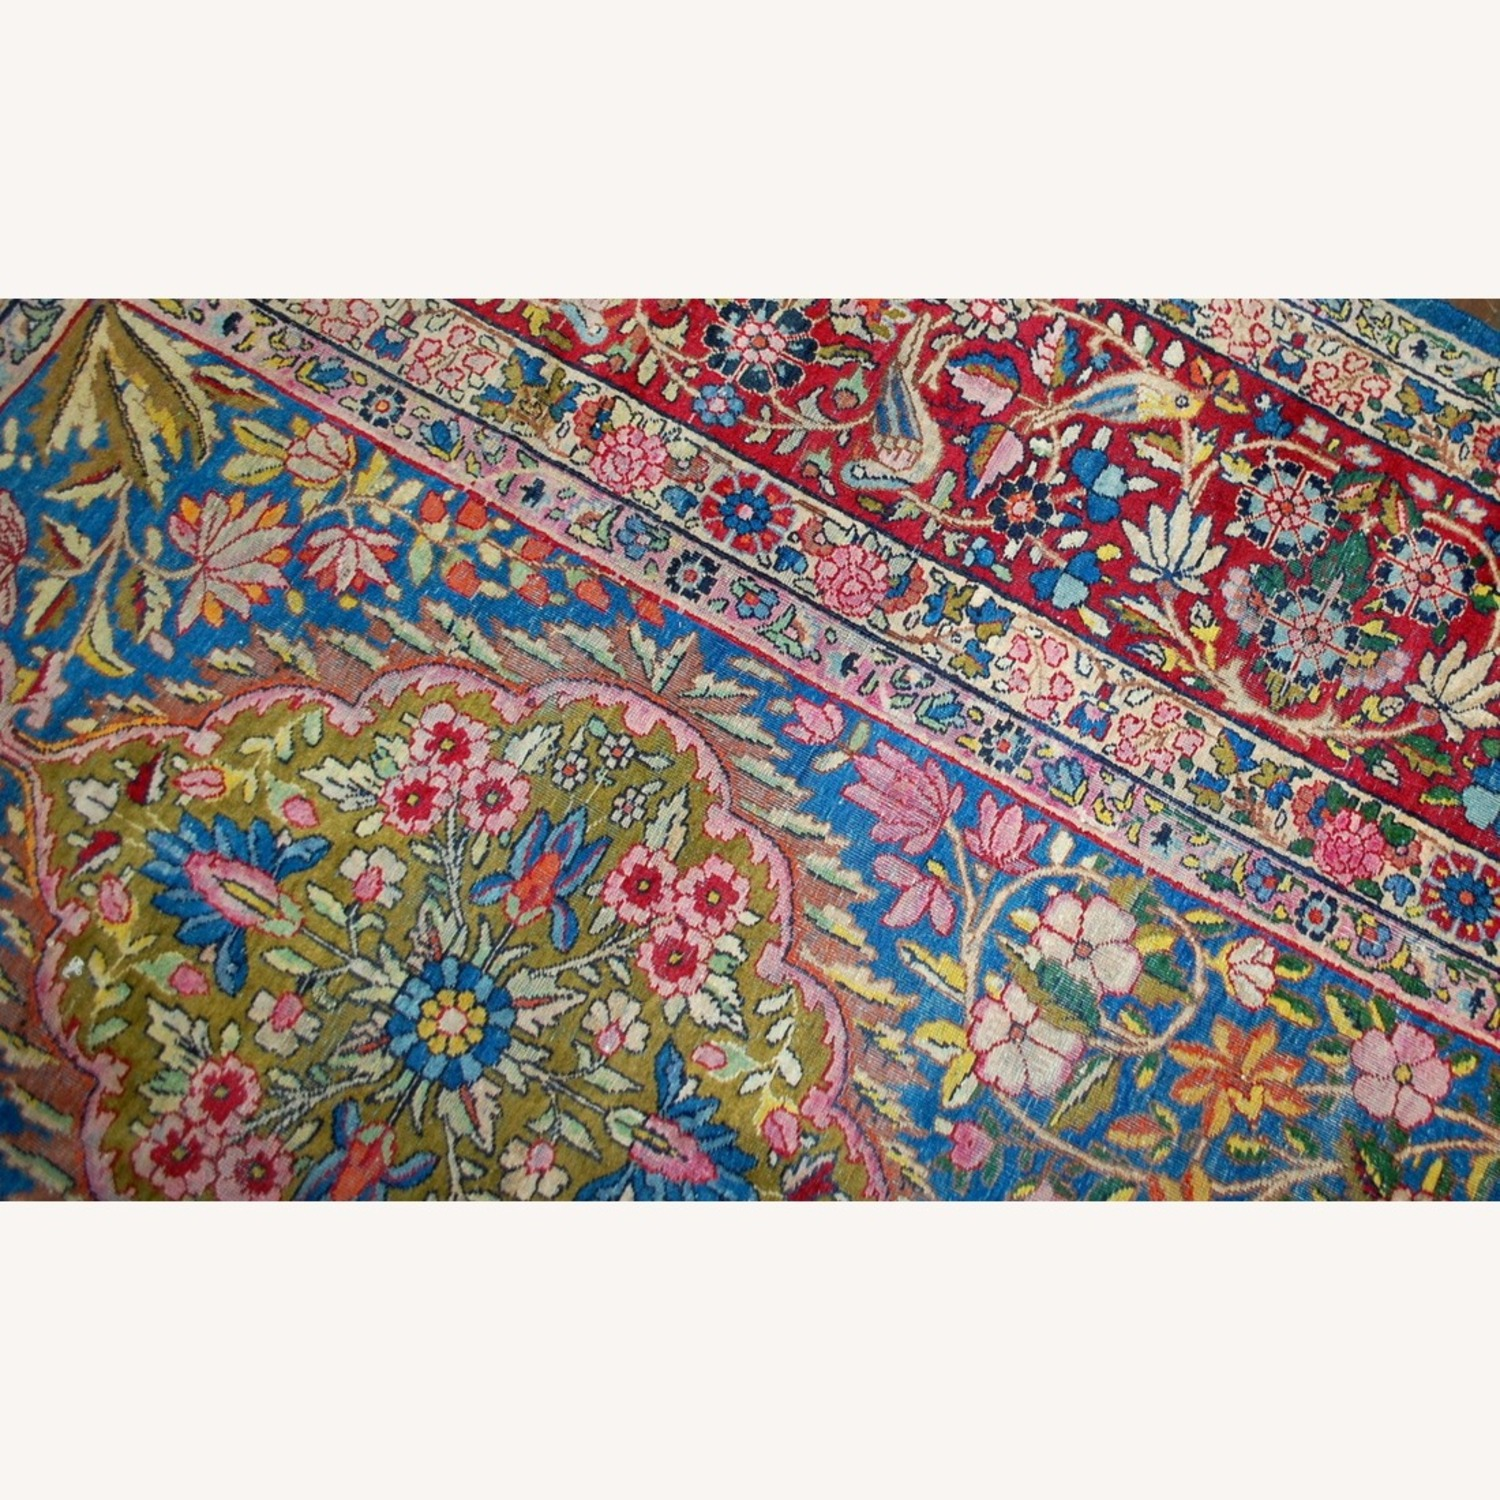 Hand made Antique Persian Yazd Rug - image-4